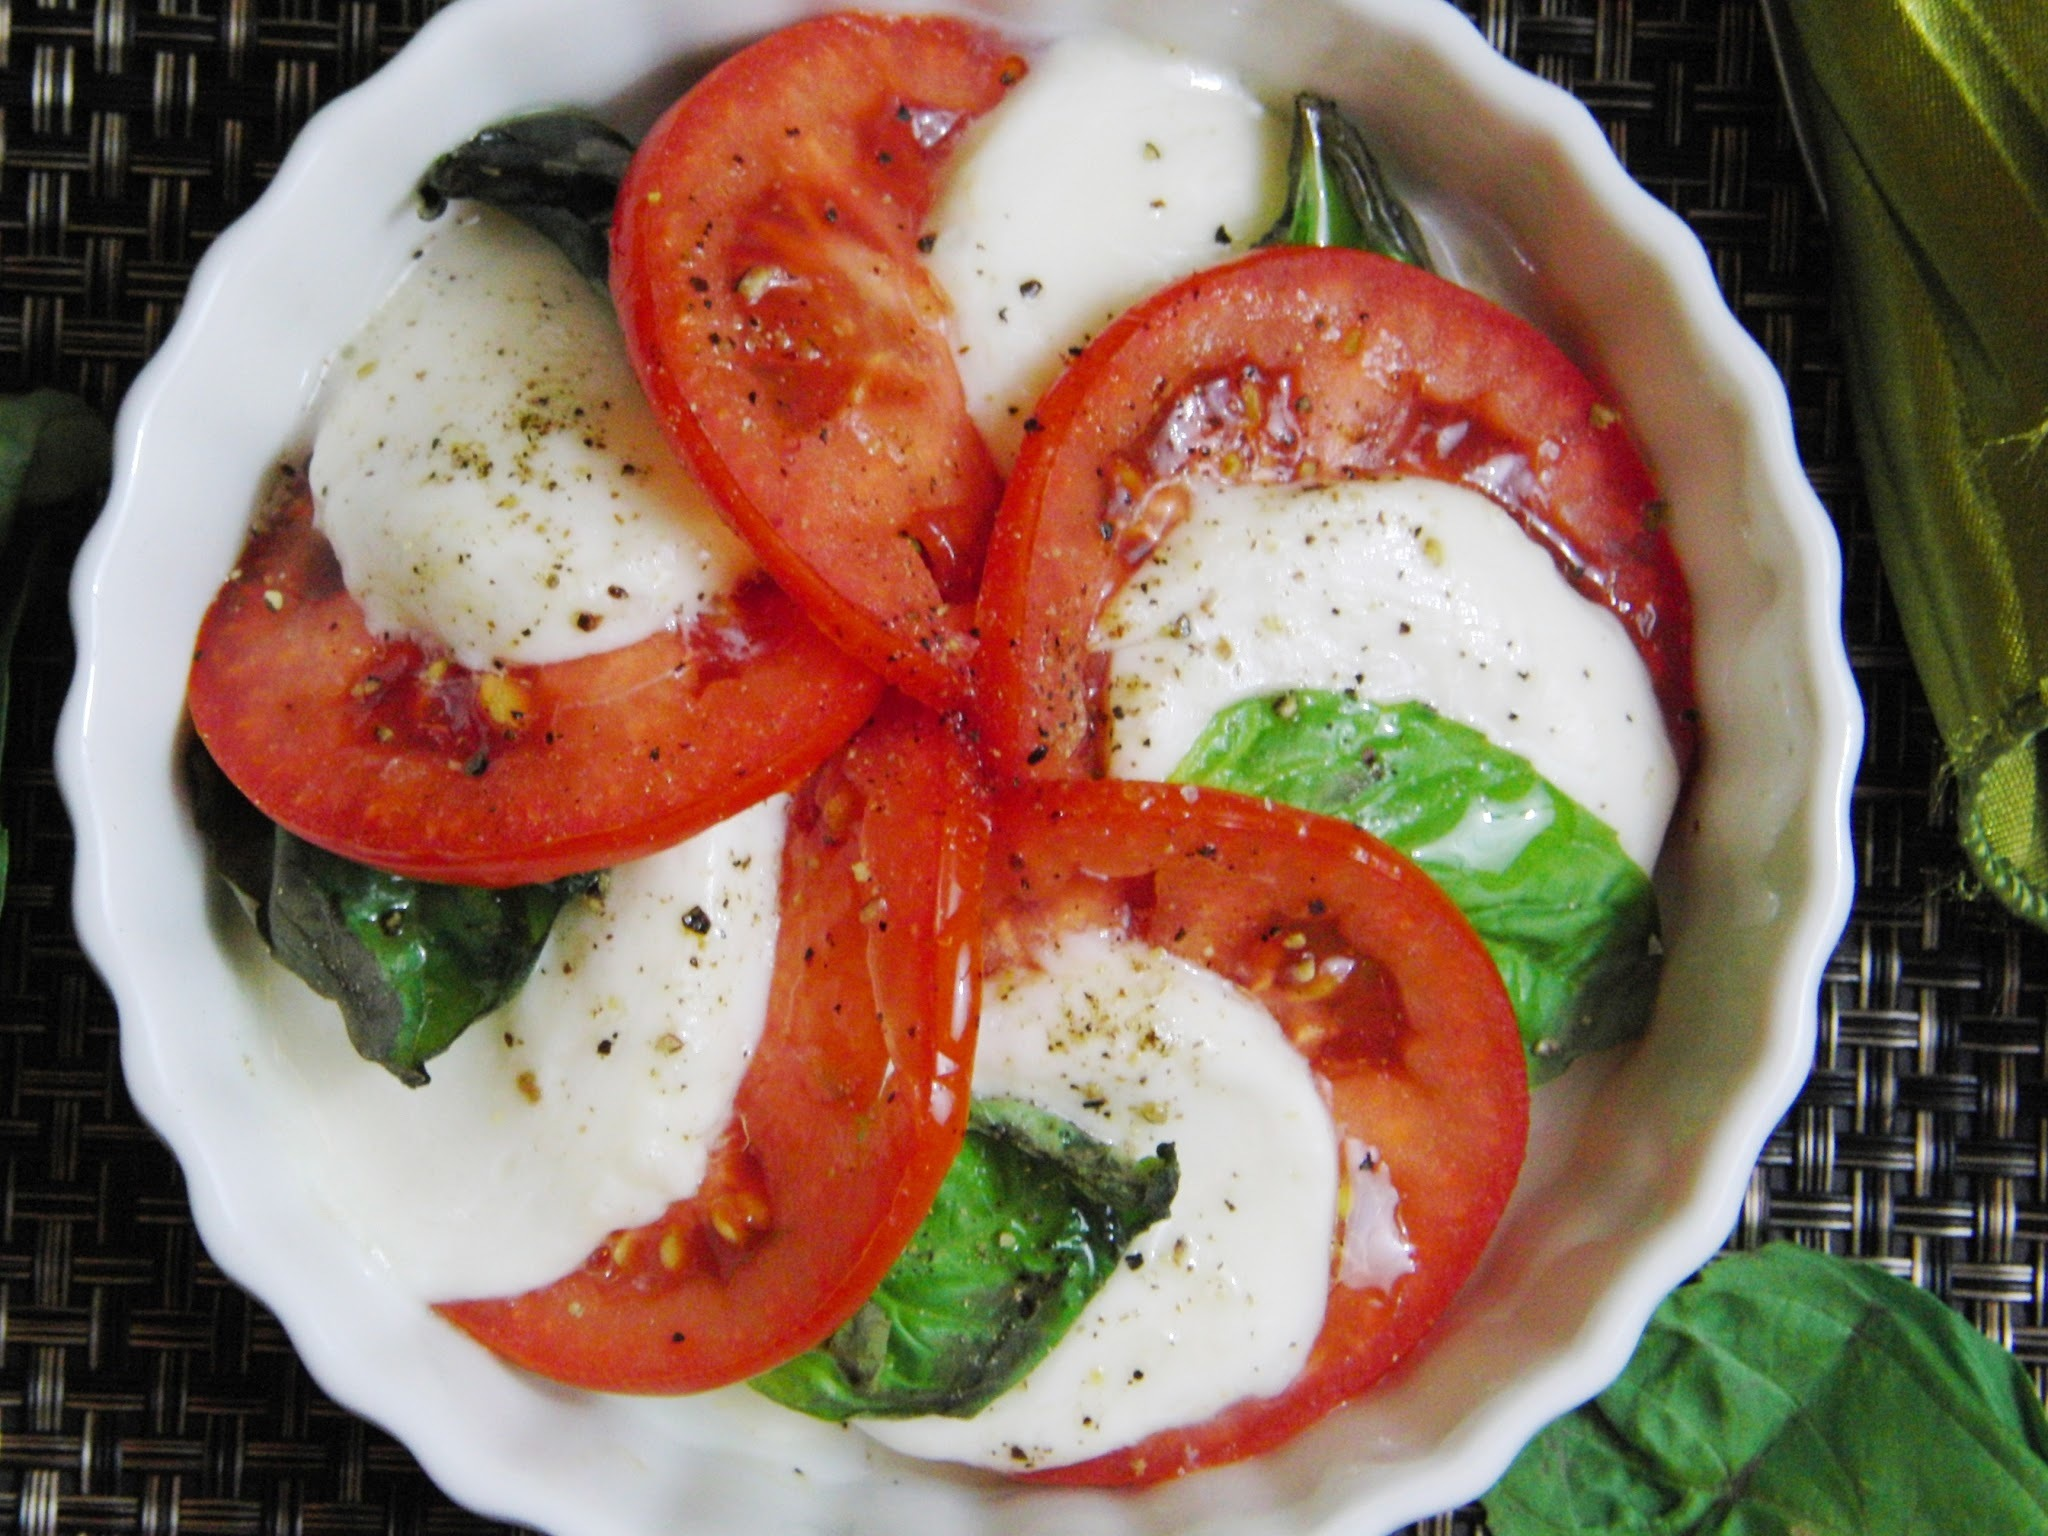 It's never the wrong season for the flavors of Caprese...